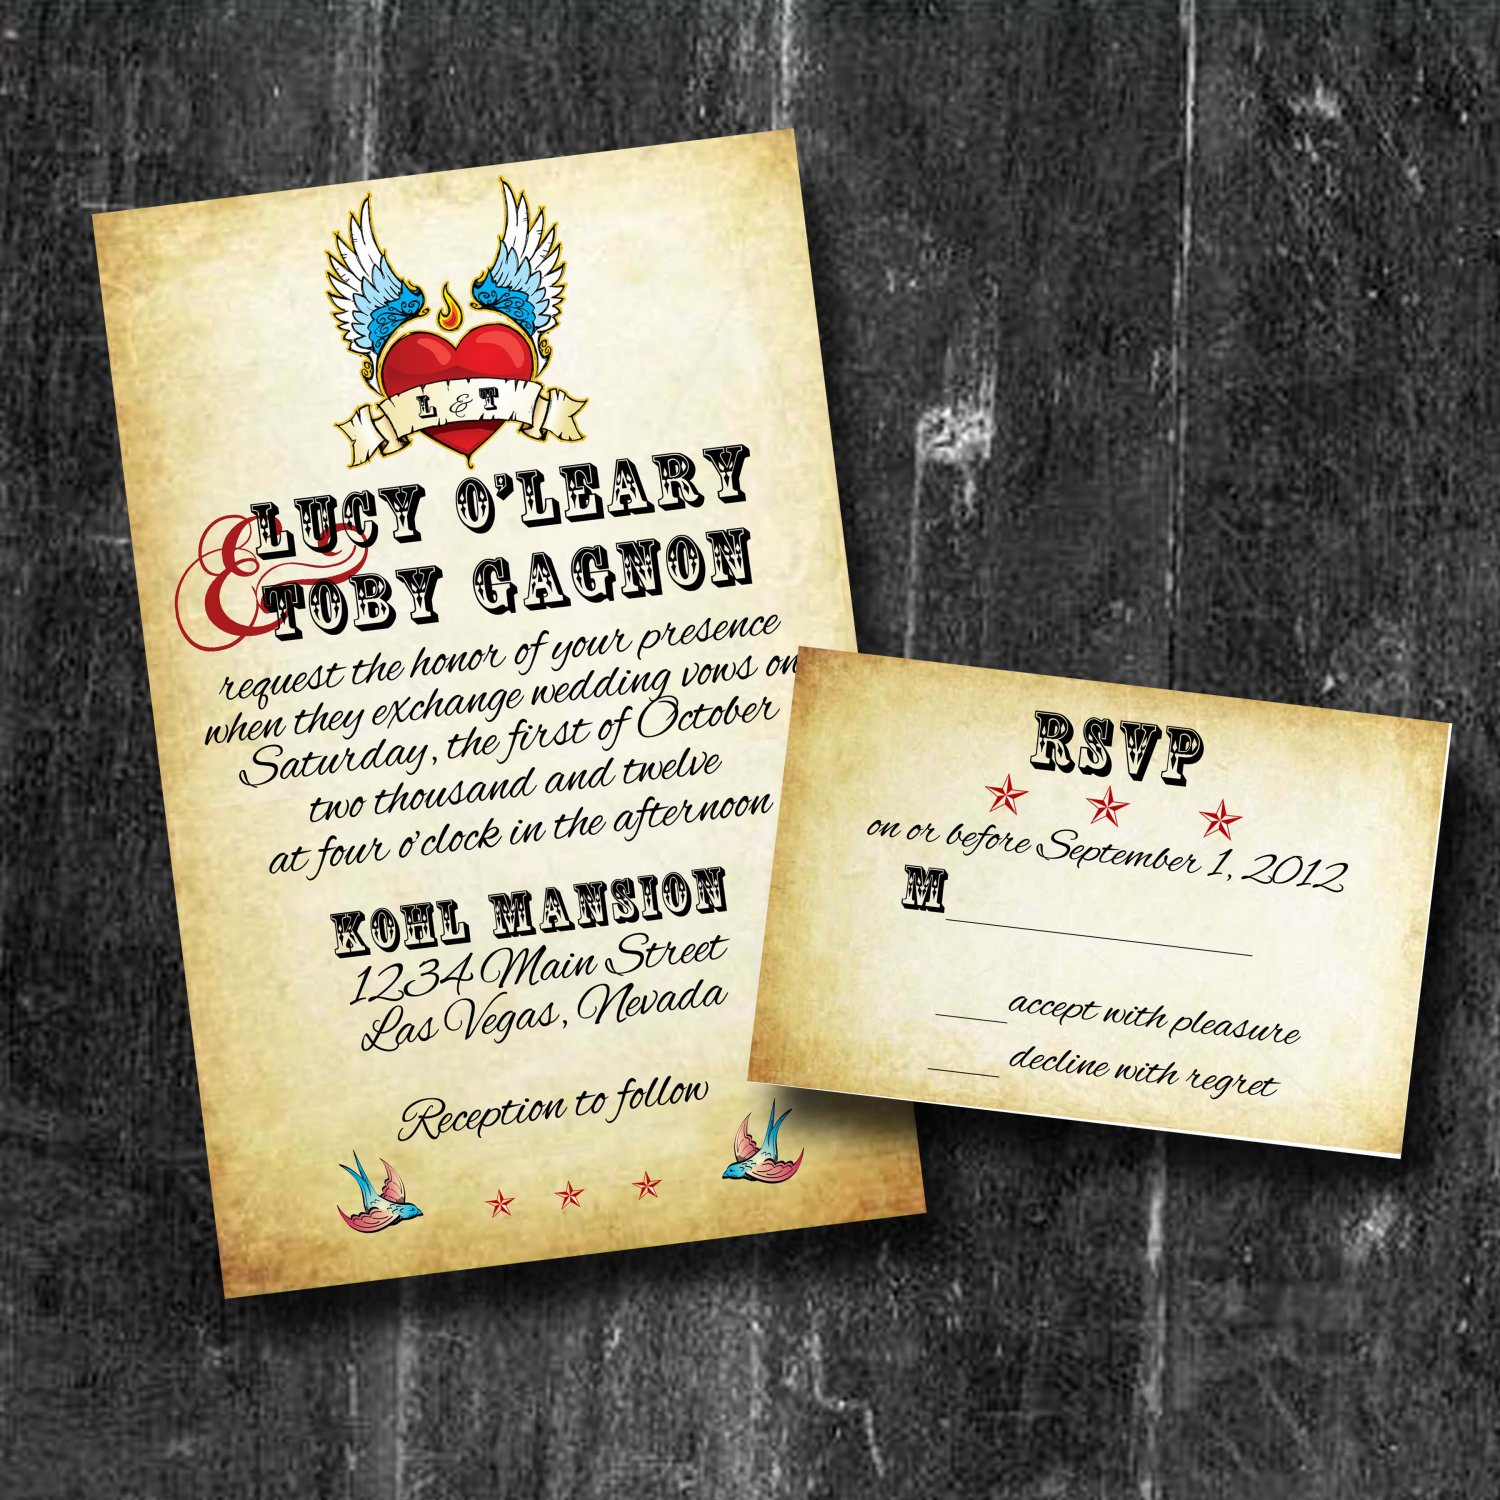 Rolled Wedding Invitations: Rock -N- Roll Wedding Invitations With RSVP Personalized